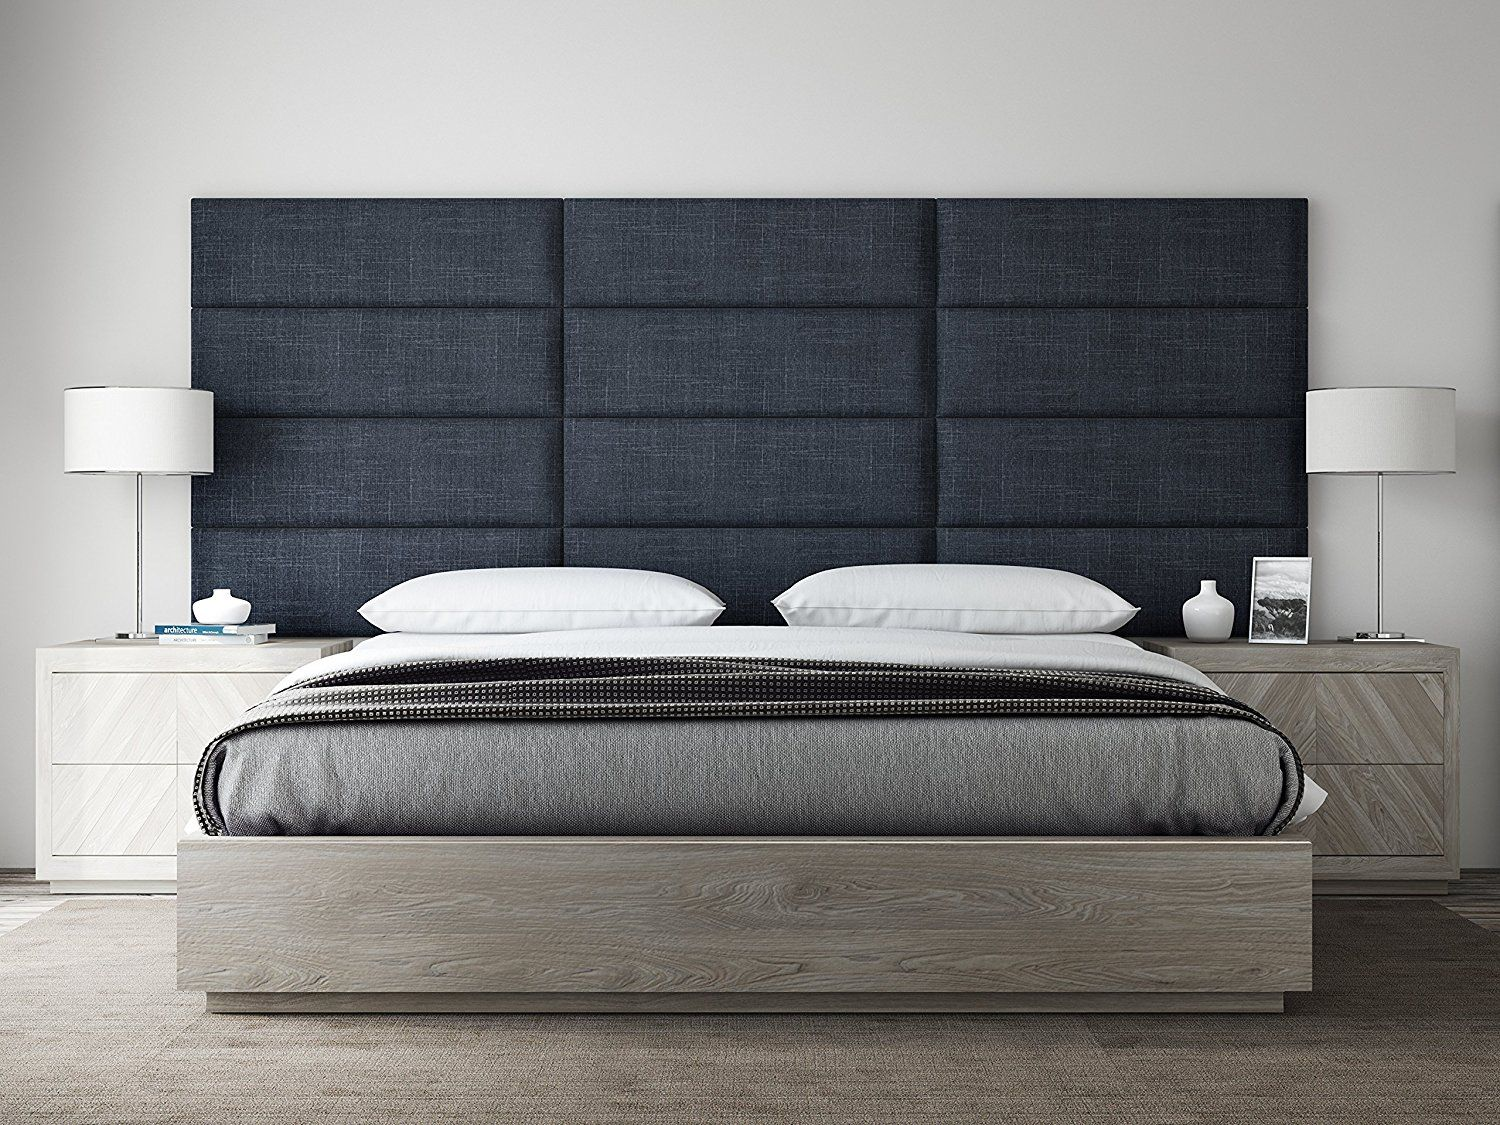 Amazon Com Vant Upholstered Headboards Accent Wall Panels Packs Of 4 Textured Cotton Weave Midn Bed Headboard Design Bed Furniture Design Bed Furniture